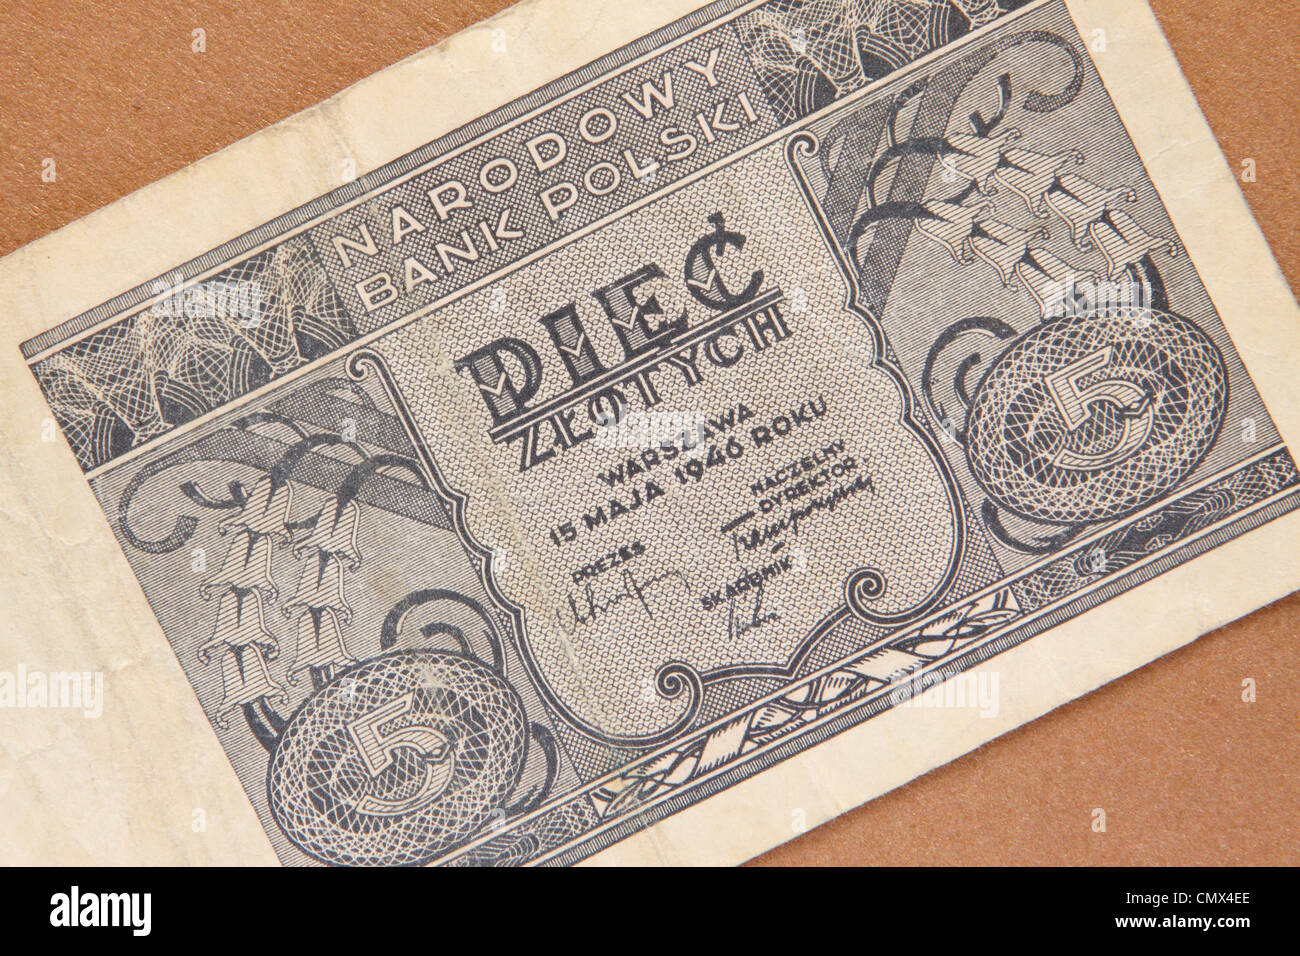 Poland Polish banknote 5 zloty dated 1946 issued by Narodowy Bank Polski just after WW2 - Stock Image